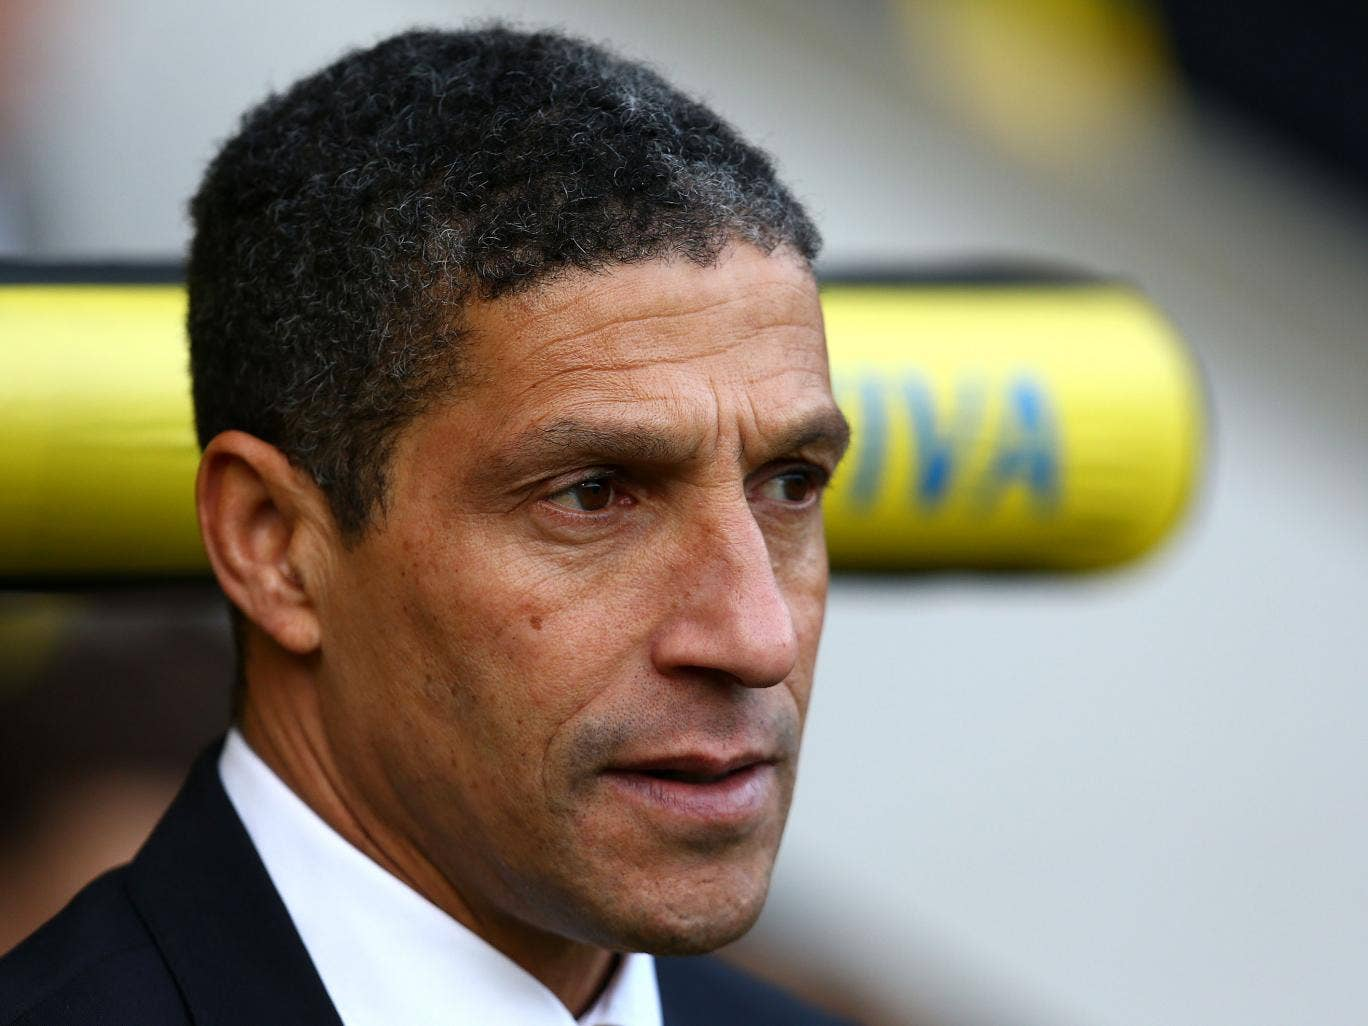 Chris Hughton, Norwich's manager, will not be pleased to have been knocked out of the FA Cup by Luton